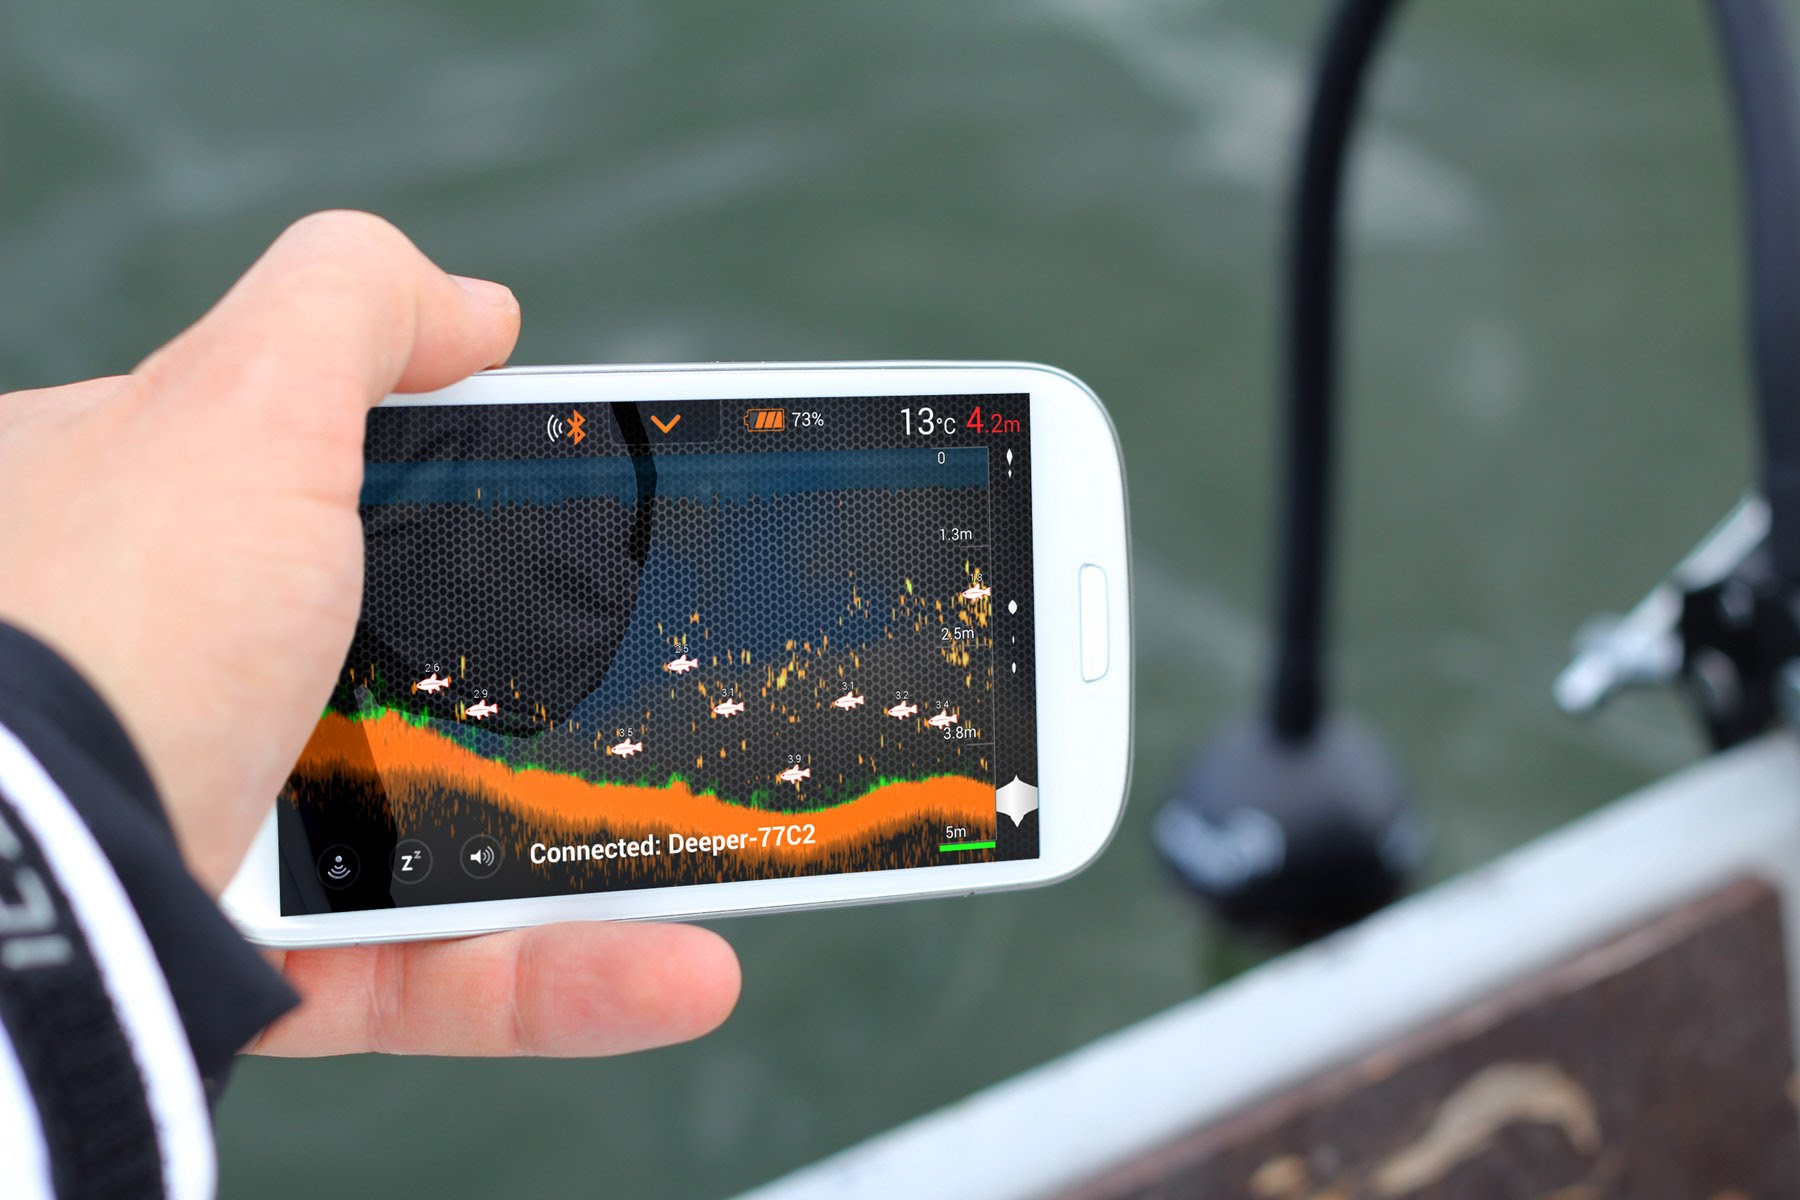 Tips and Tricks to Catch more fish using Fish Finder